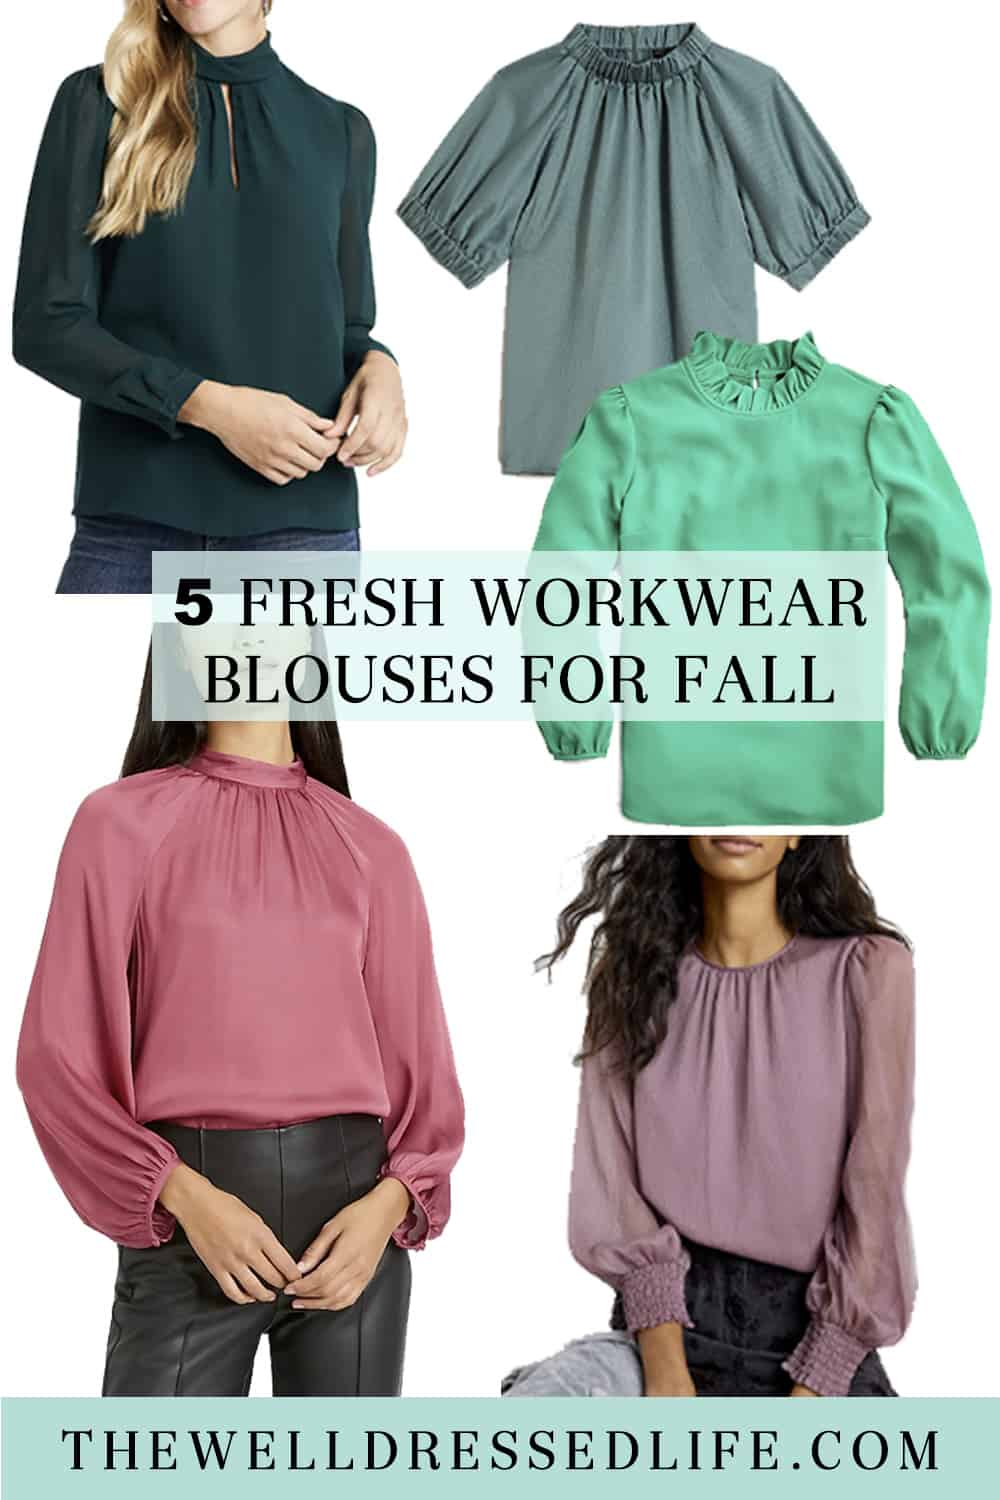 5 Fresh Workwear Blouses for Fall